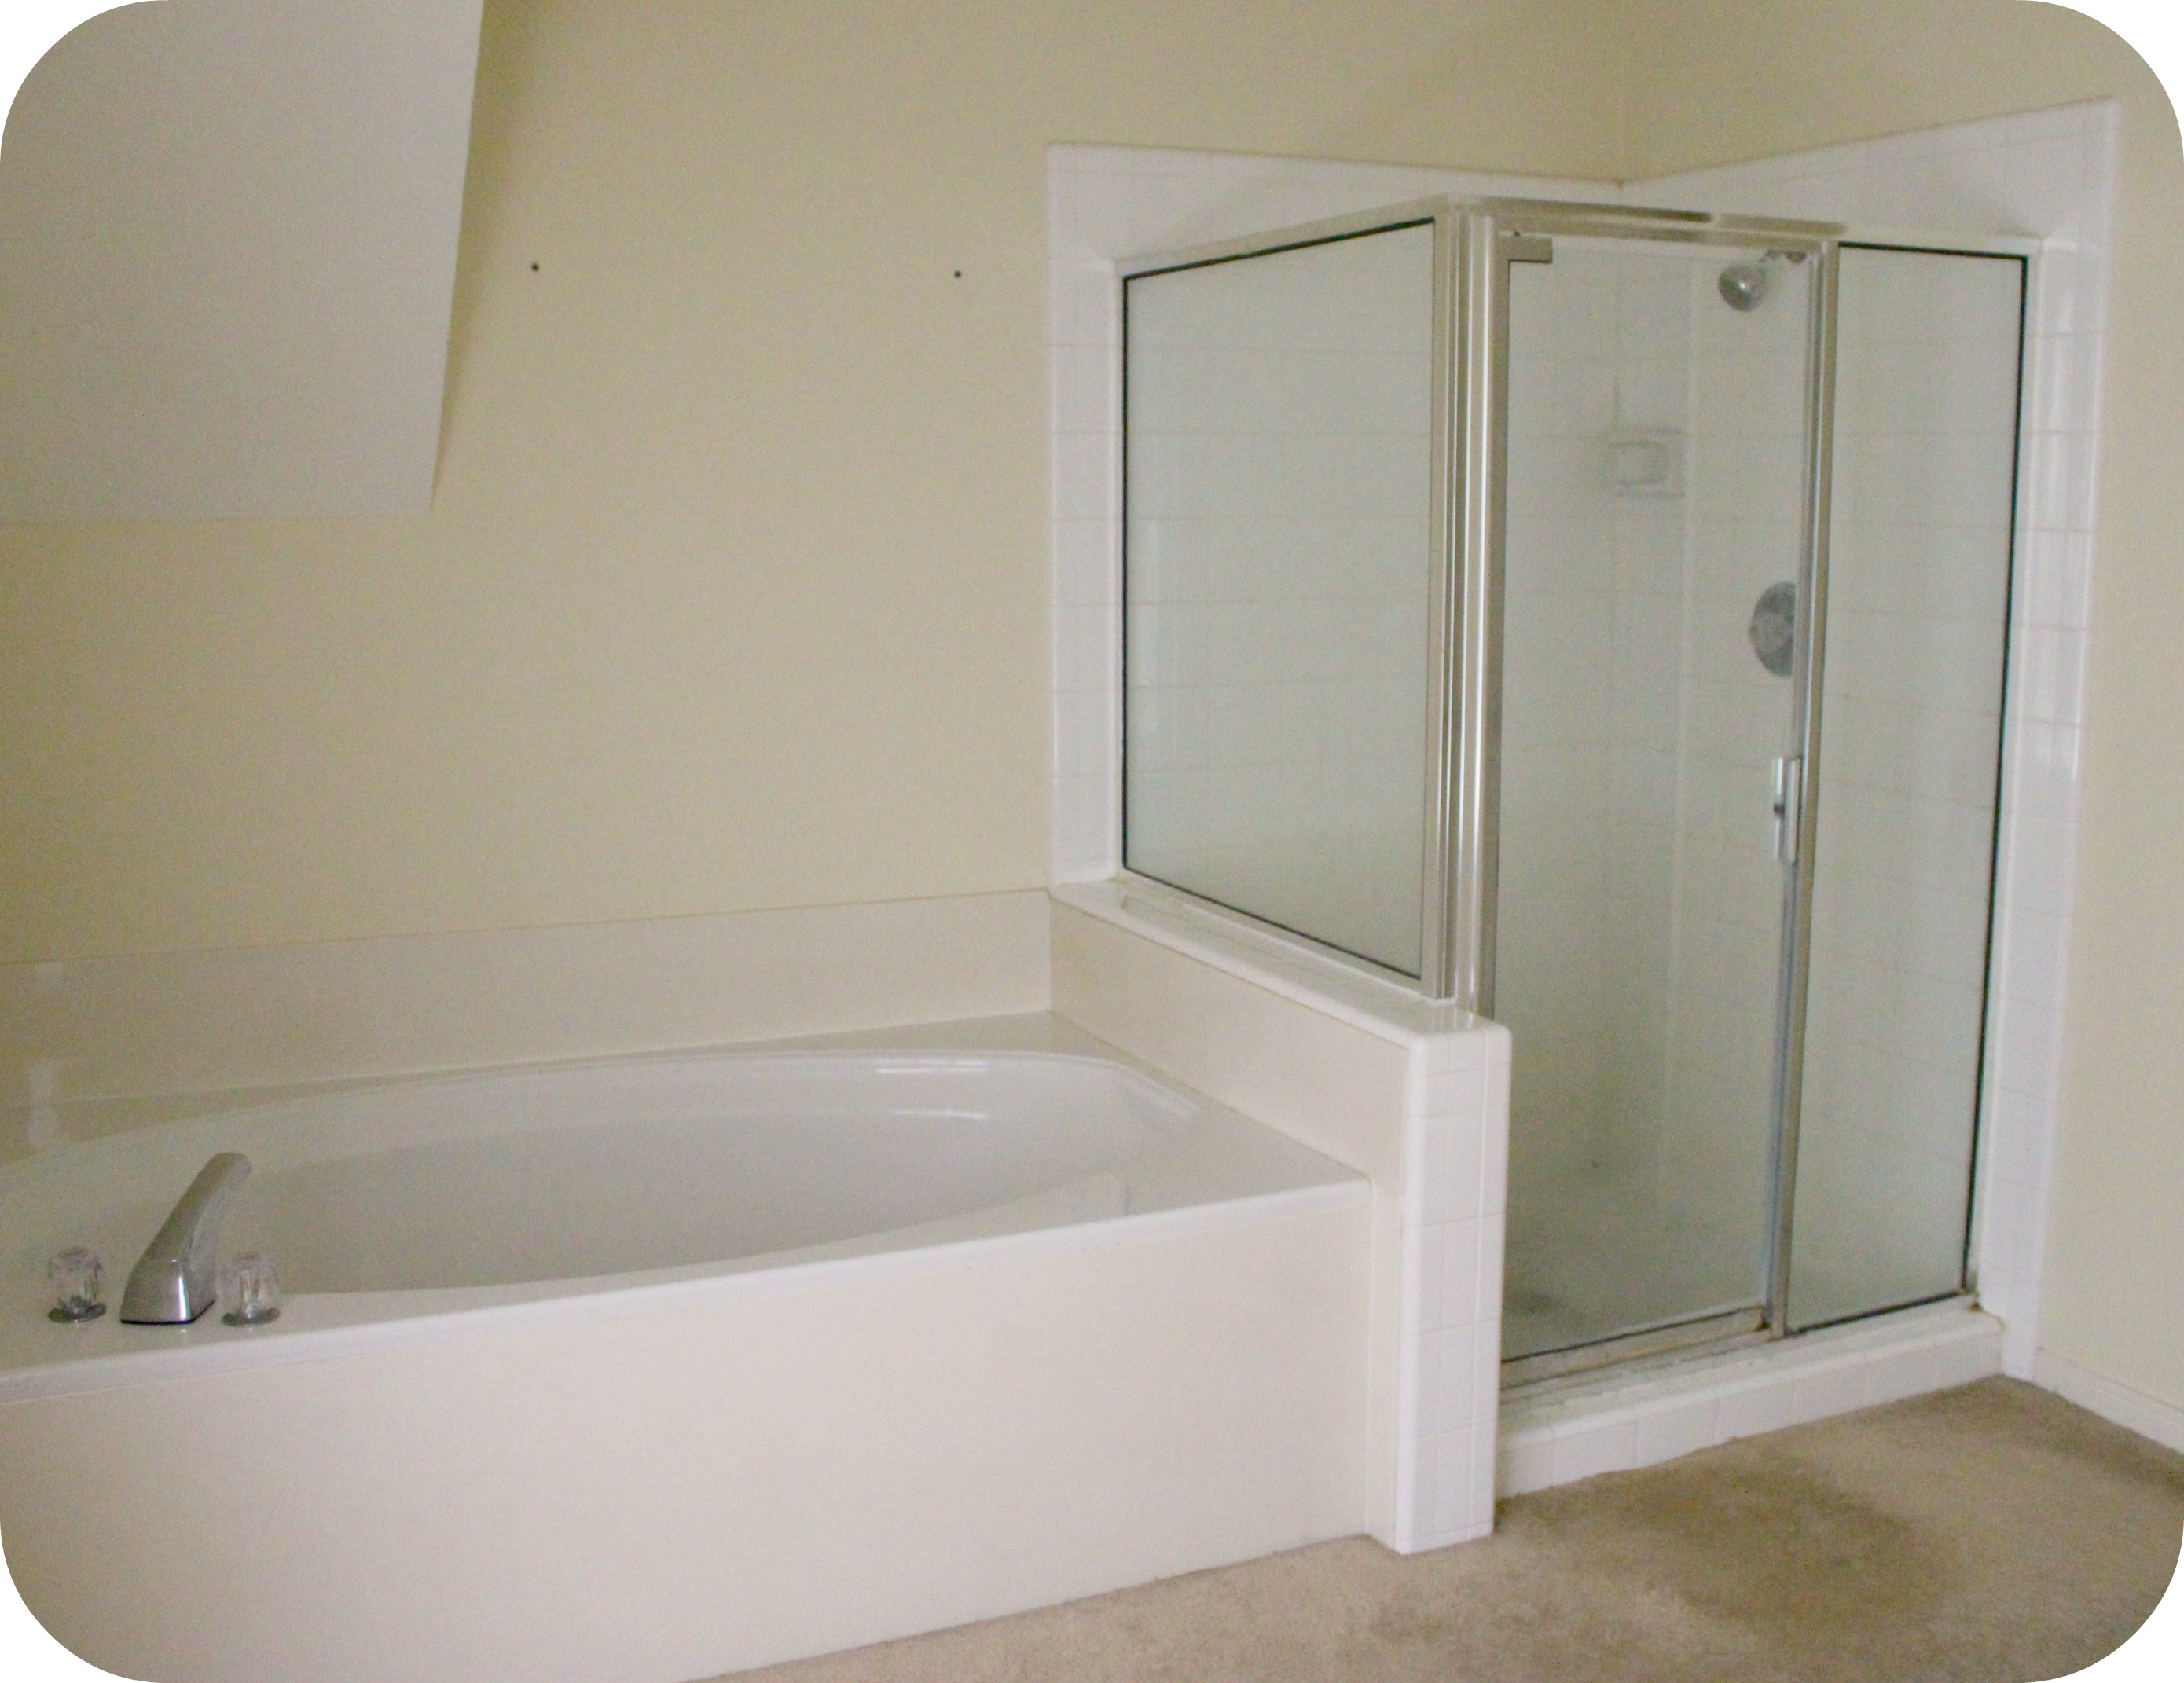 The master bath remodel project inside nanabread 39 s head for Bathroom ideas with tub and shower